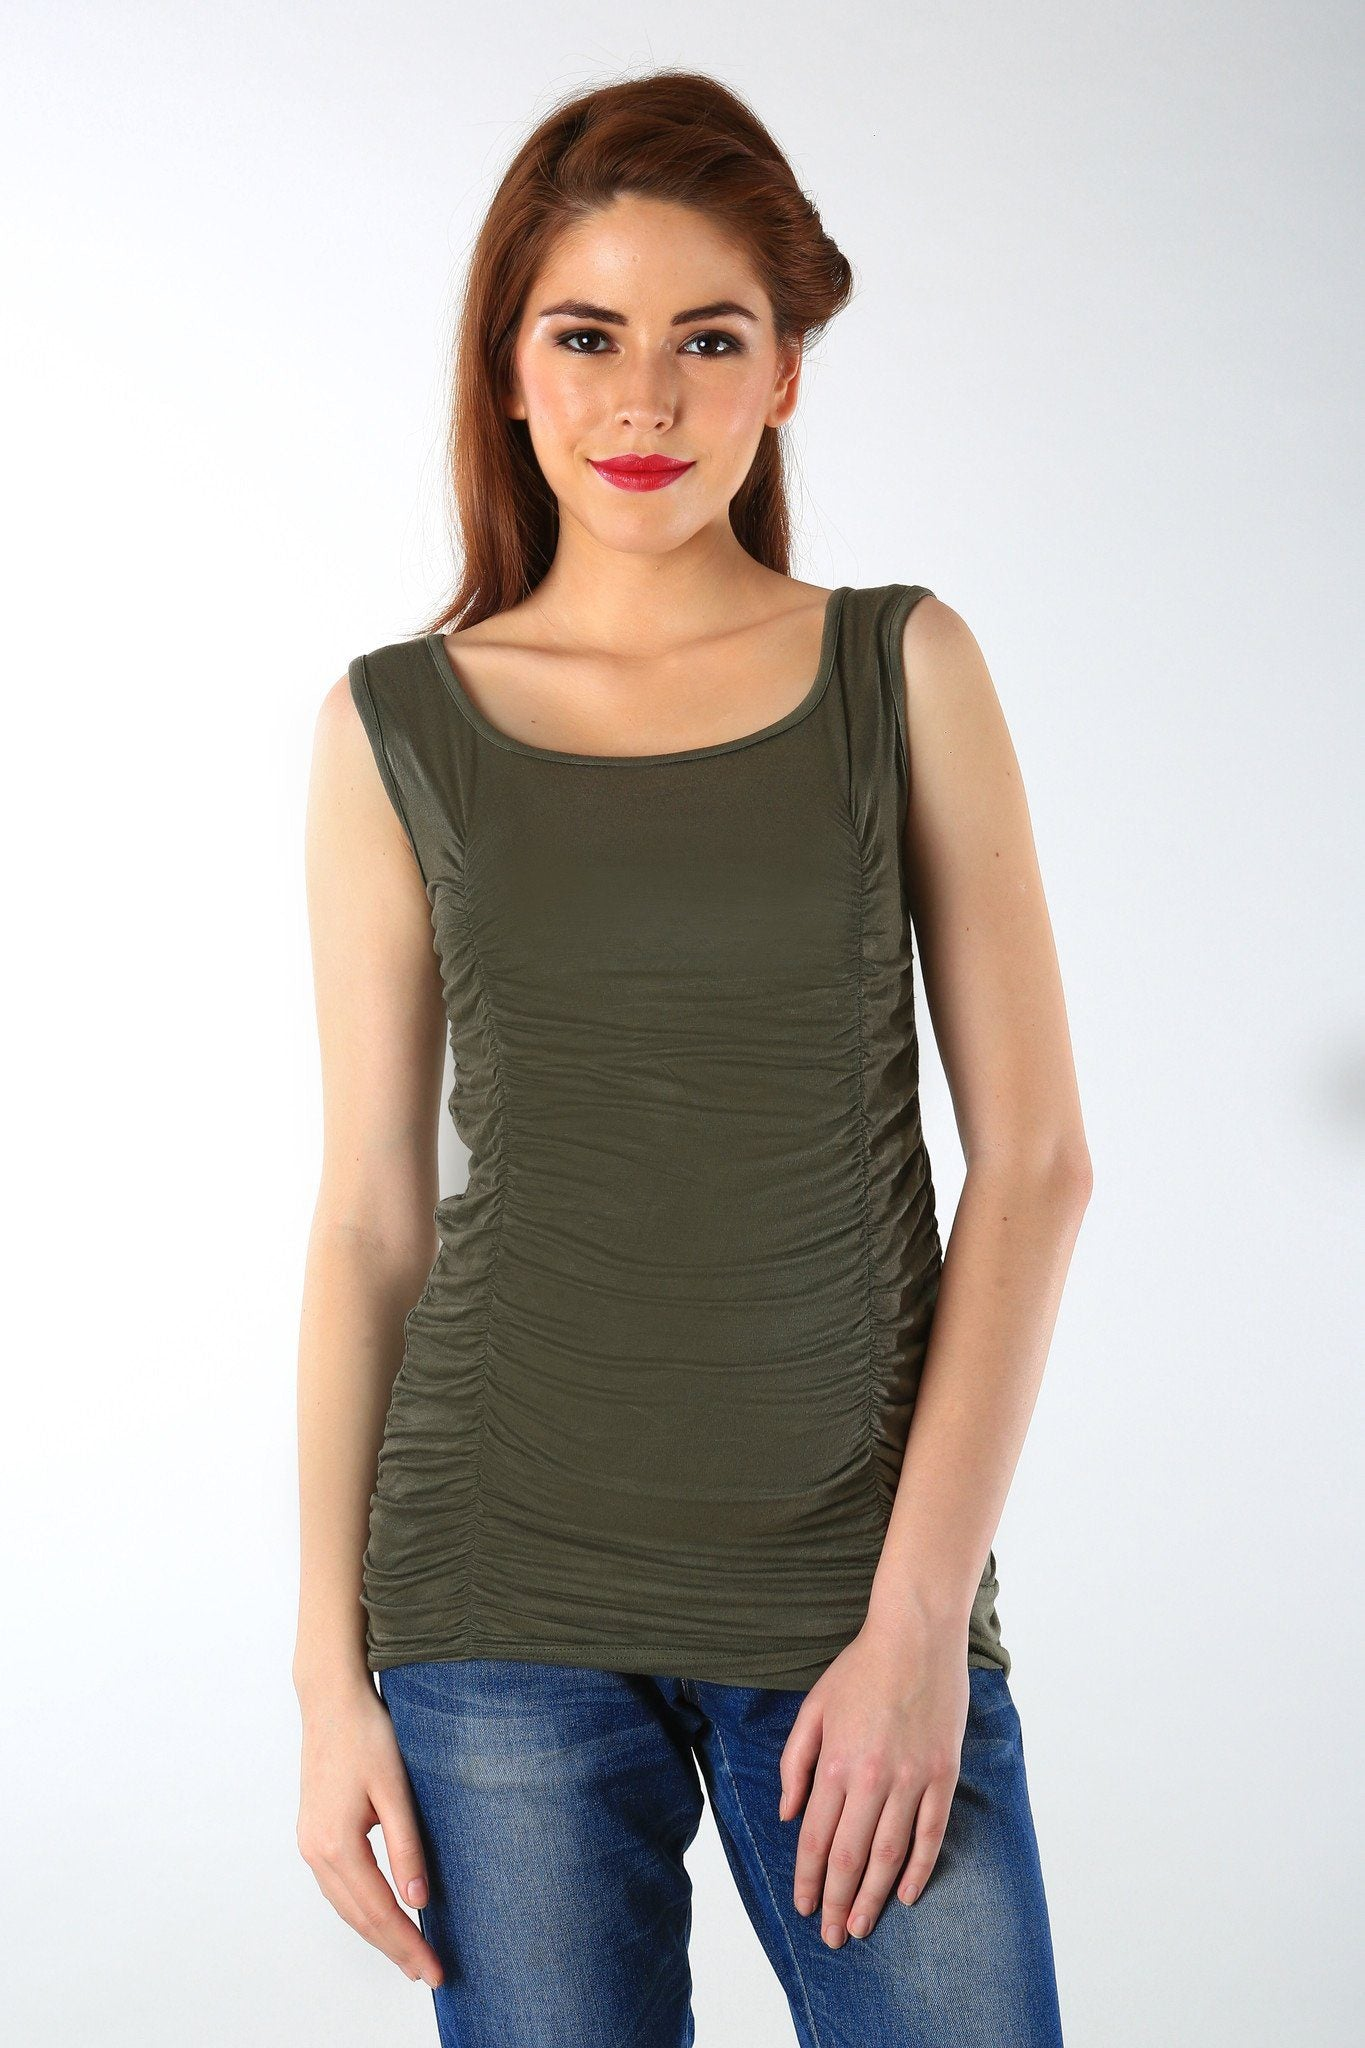 Gathered Olive Maternity Tank Top - MOMZJOY.COM - 2